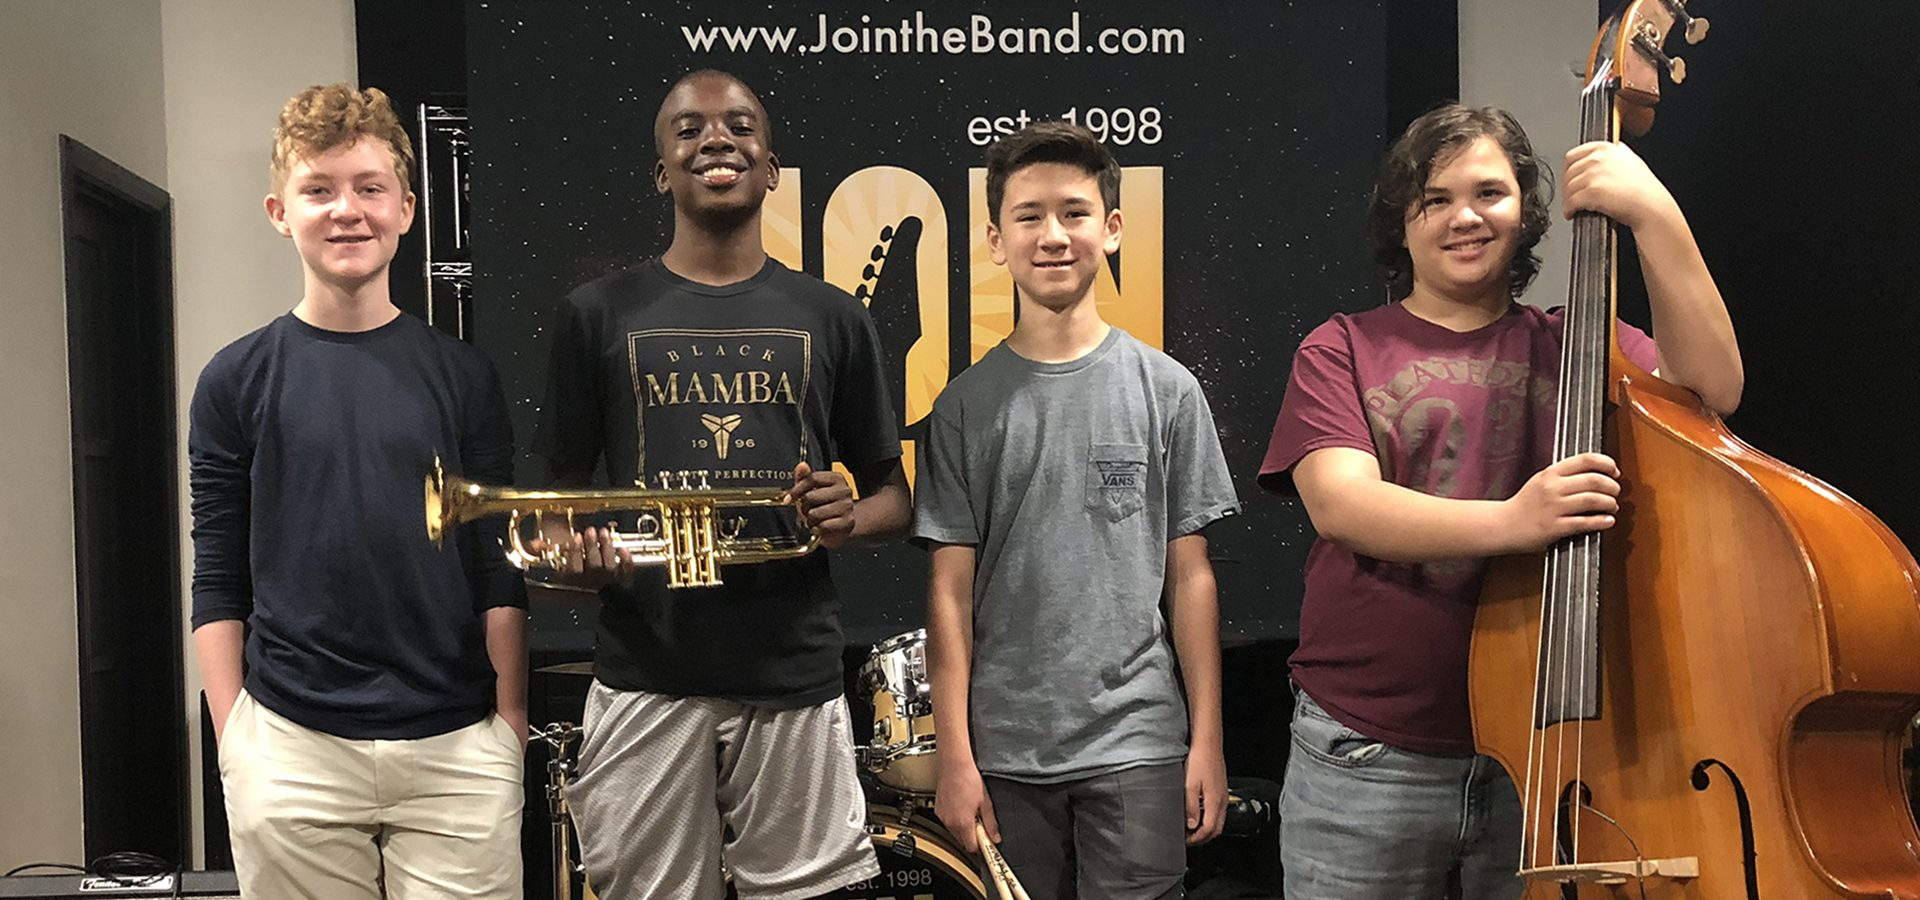 Jazz & Blues Music Camp - Quartet - Sherman Oaks, Los Angeles - Join The Band